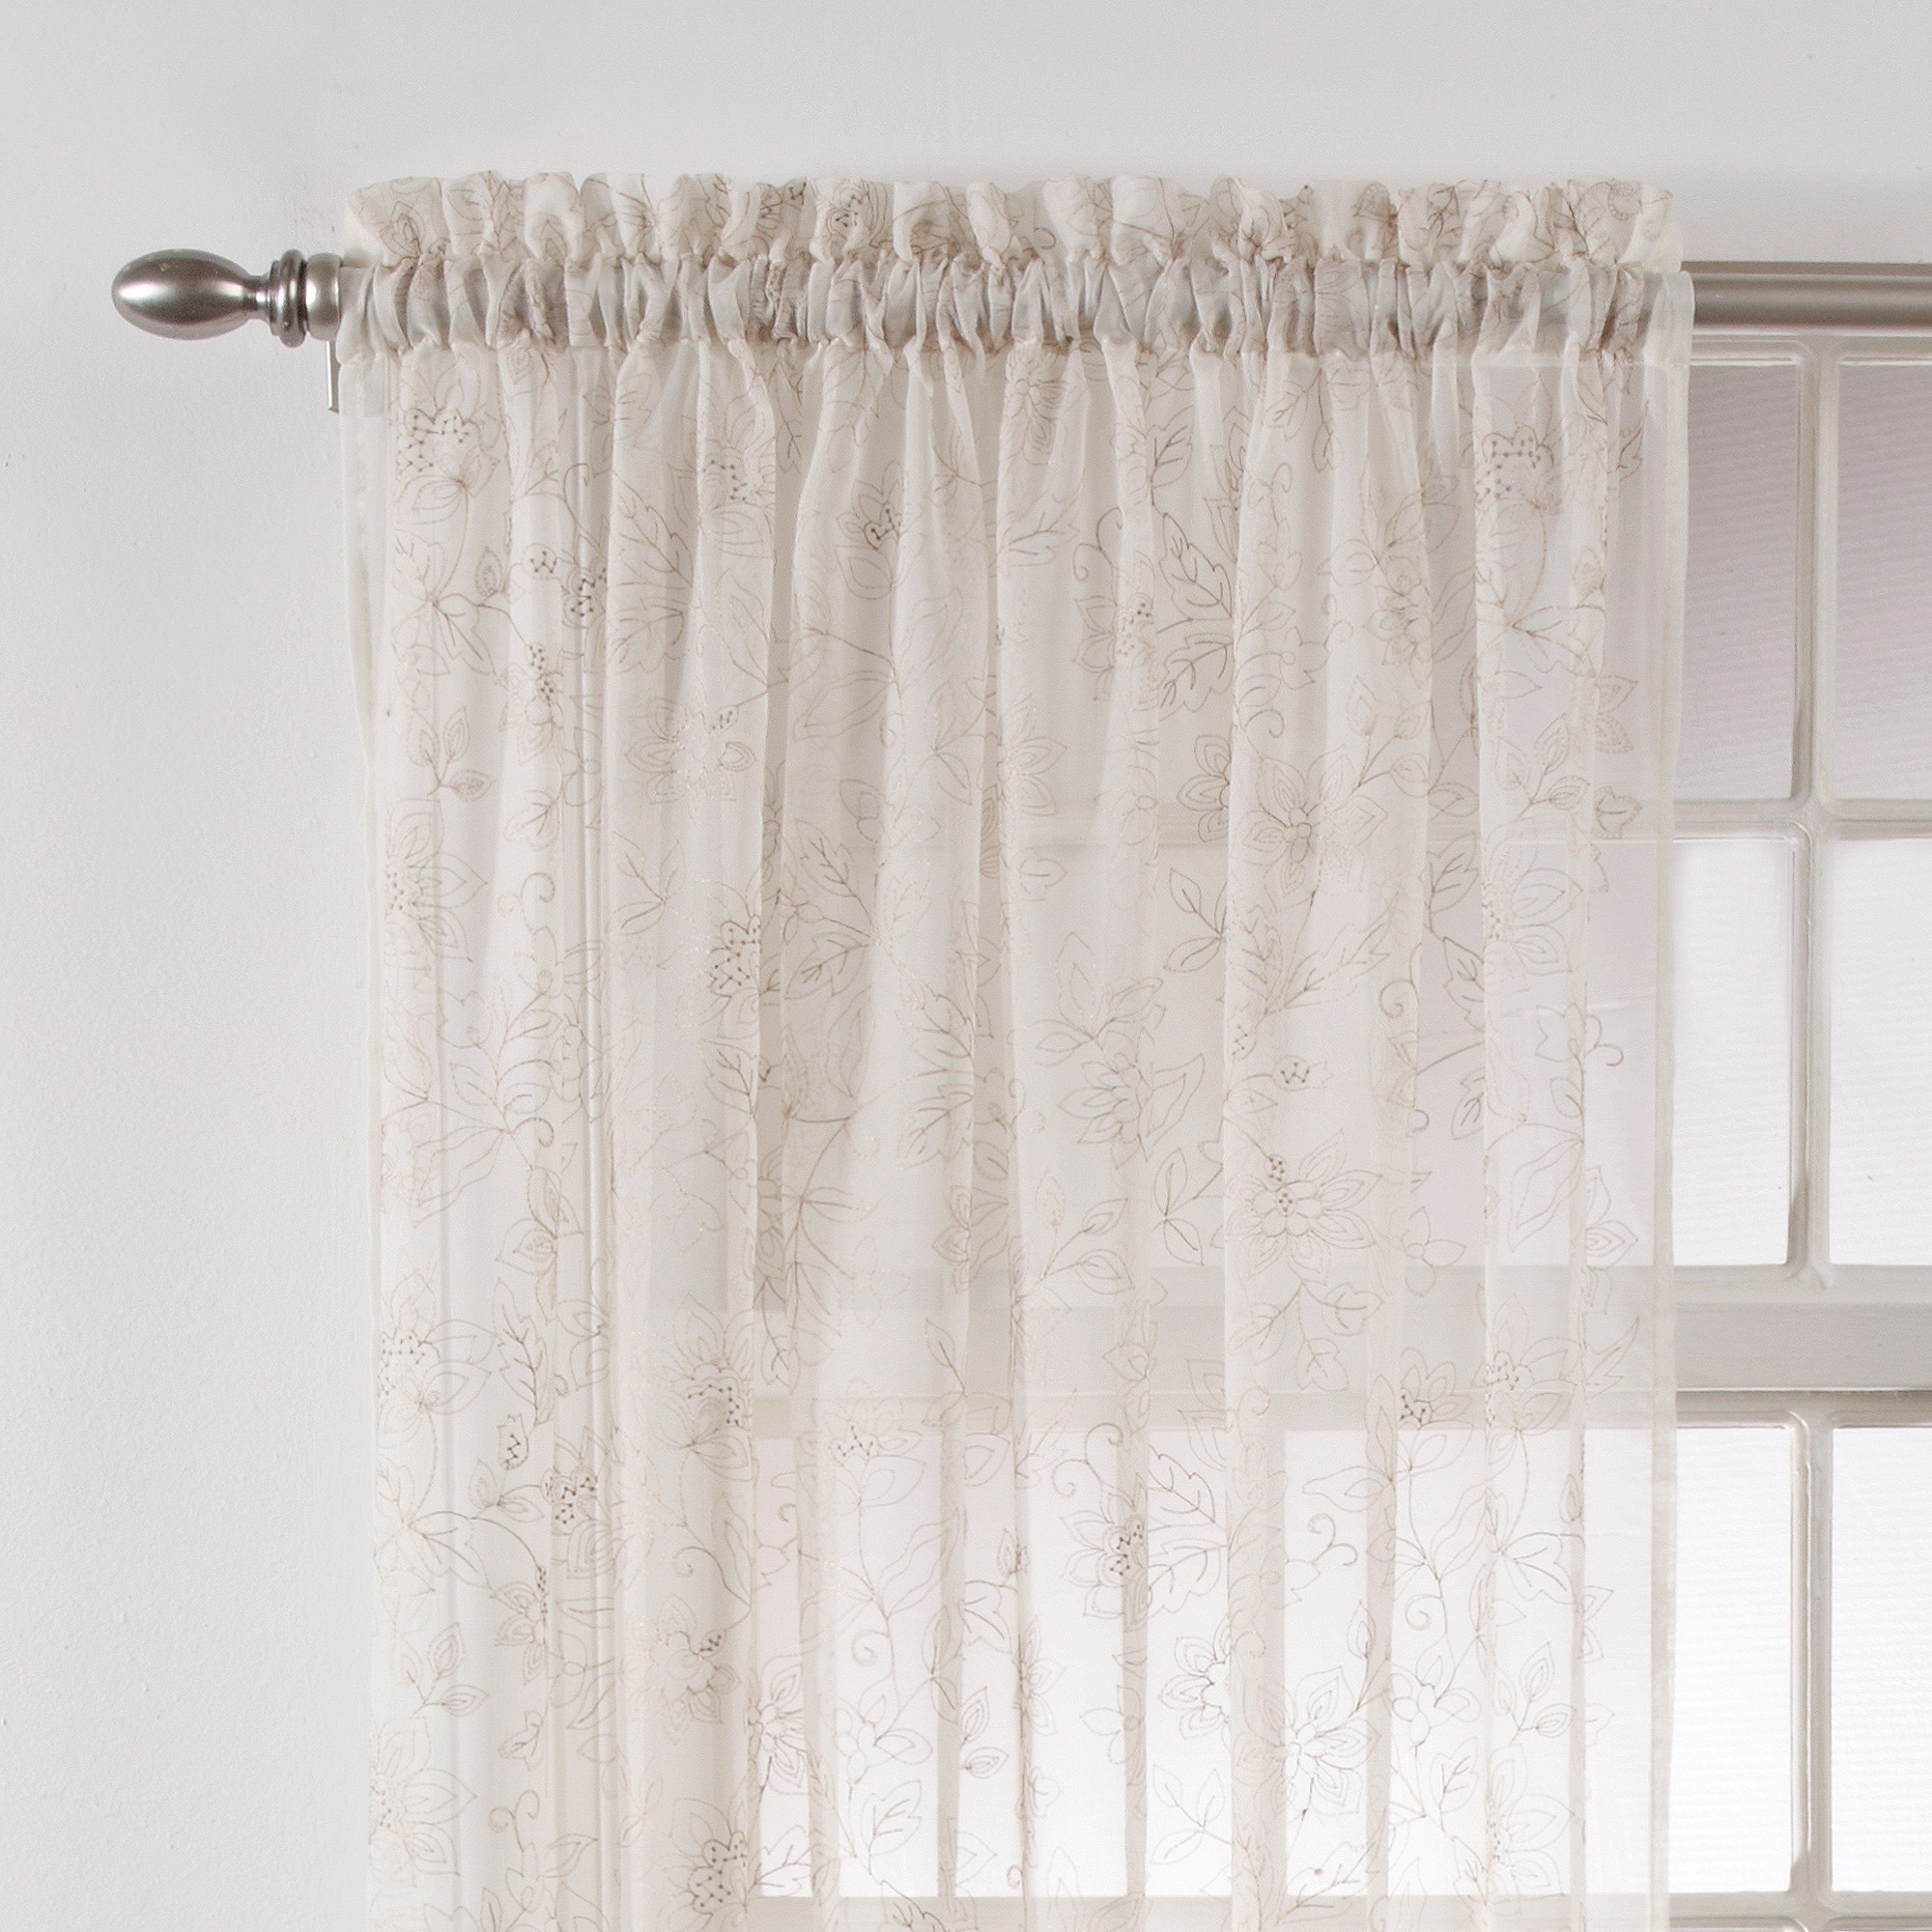 Better Homes And Gardens Embroidered Sheer Curtain Panel Walmart With Curtain Sheers (View 3 of 25)